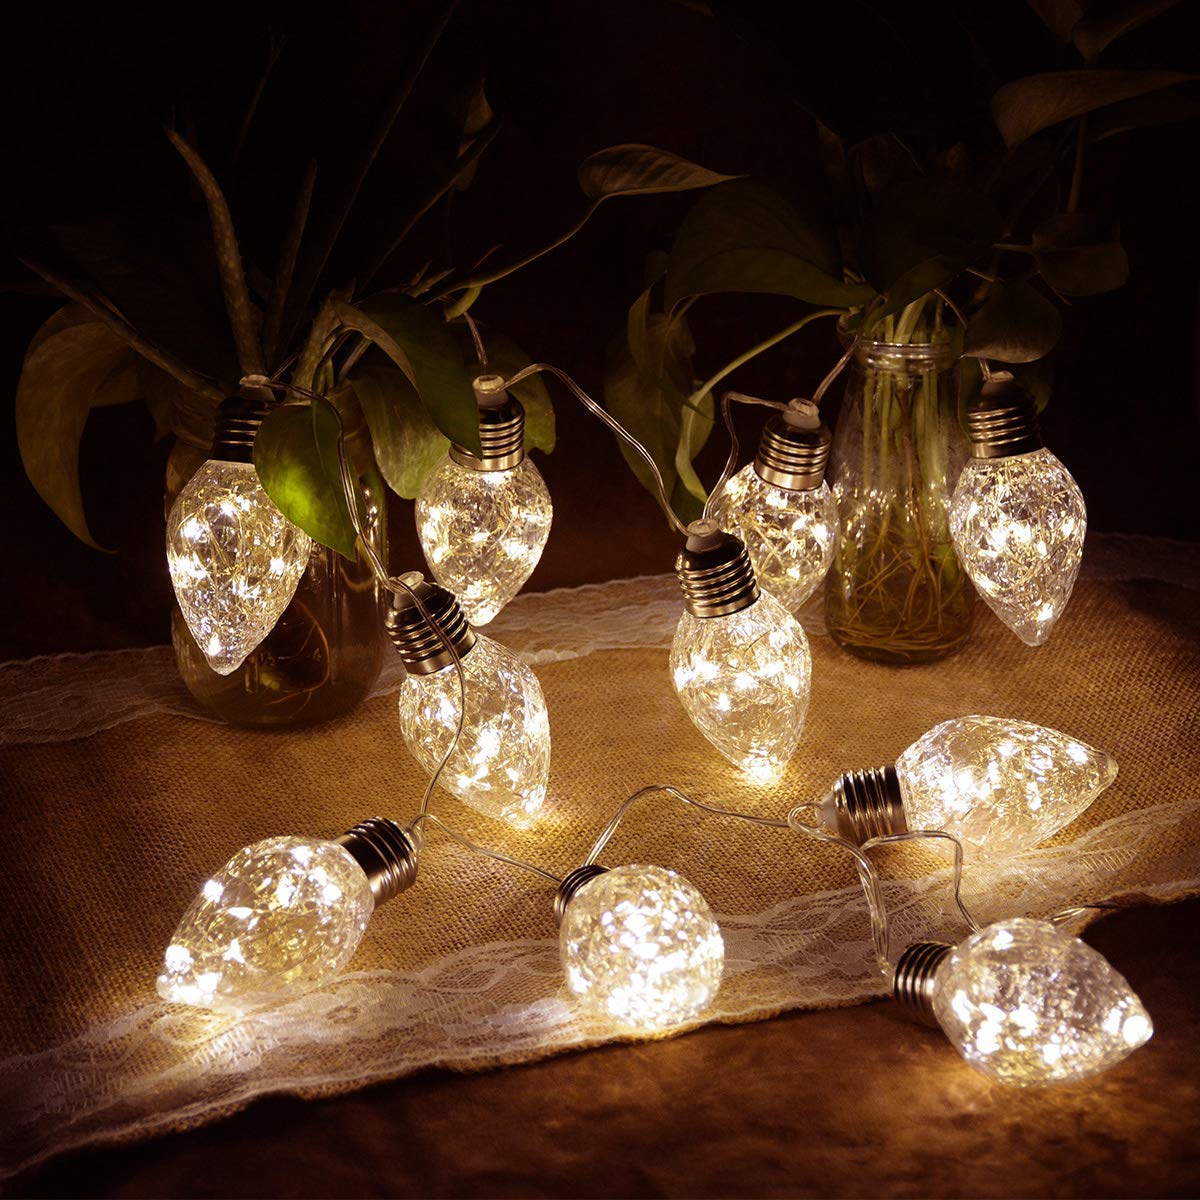 Homeleo Strawberry LED String Lights, Battery Operated Warm White Conical Bulb LED Hanging Light for Christmas Tree Halloween Wedding Party Indoor Outdoor Decoration